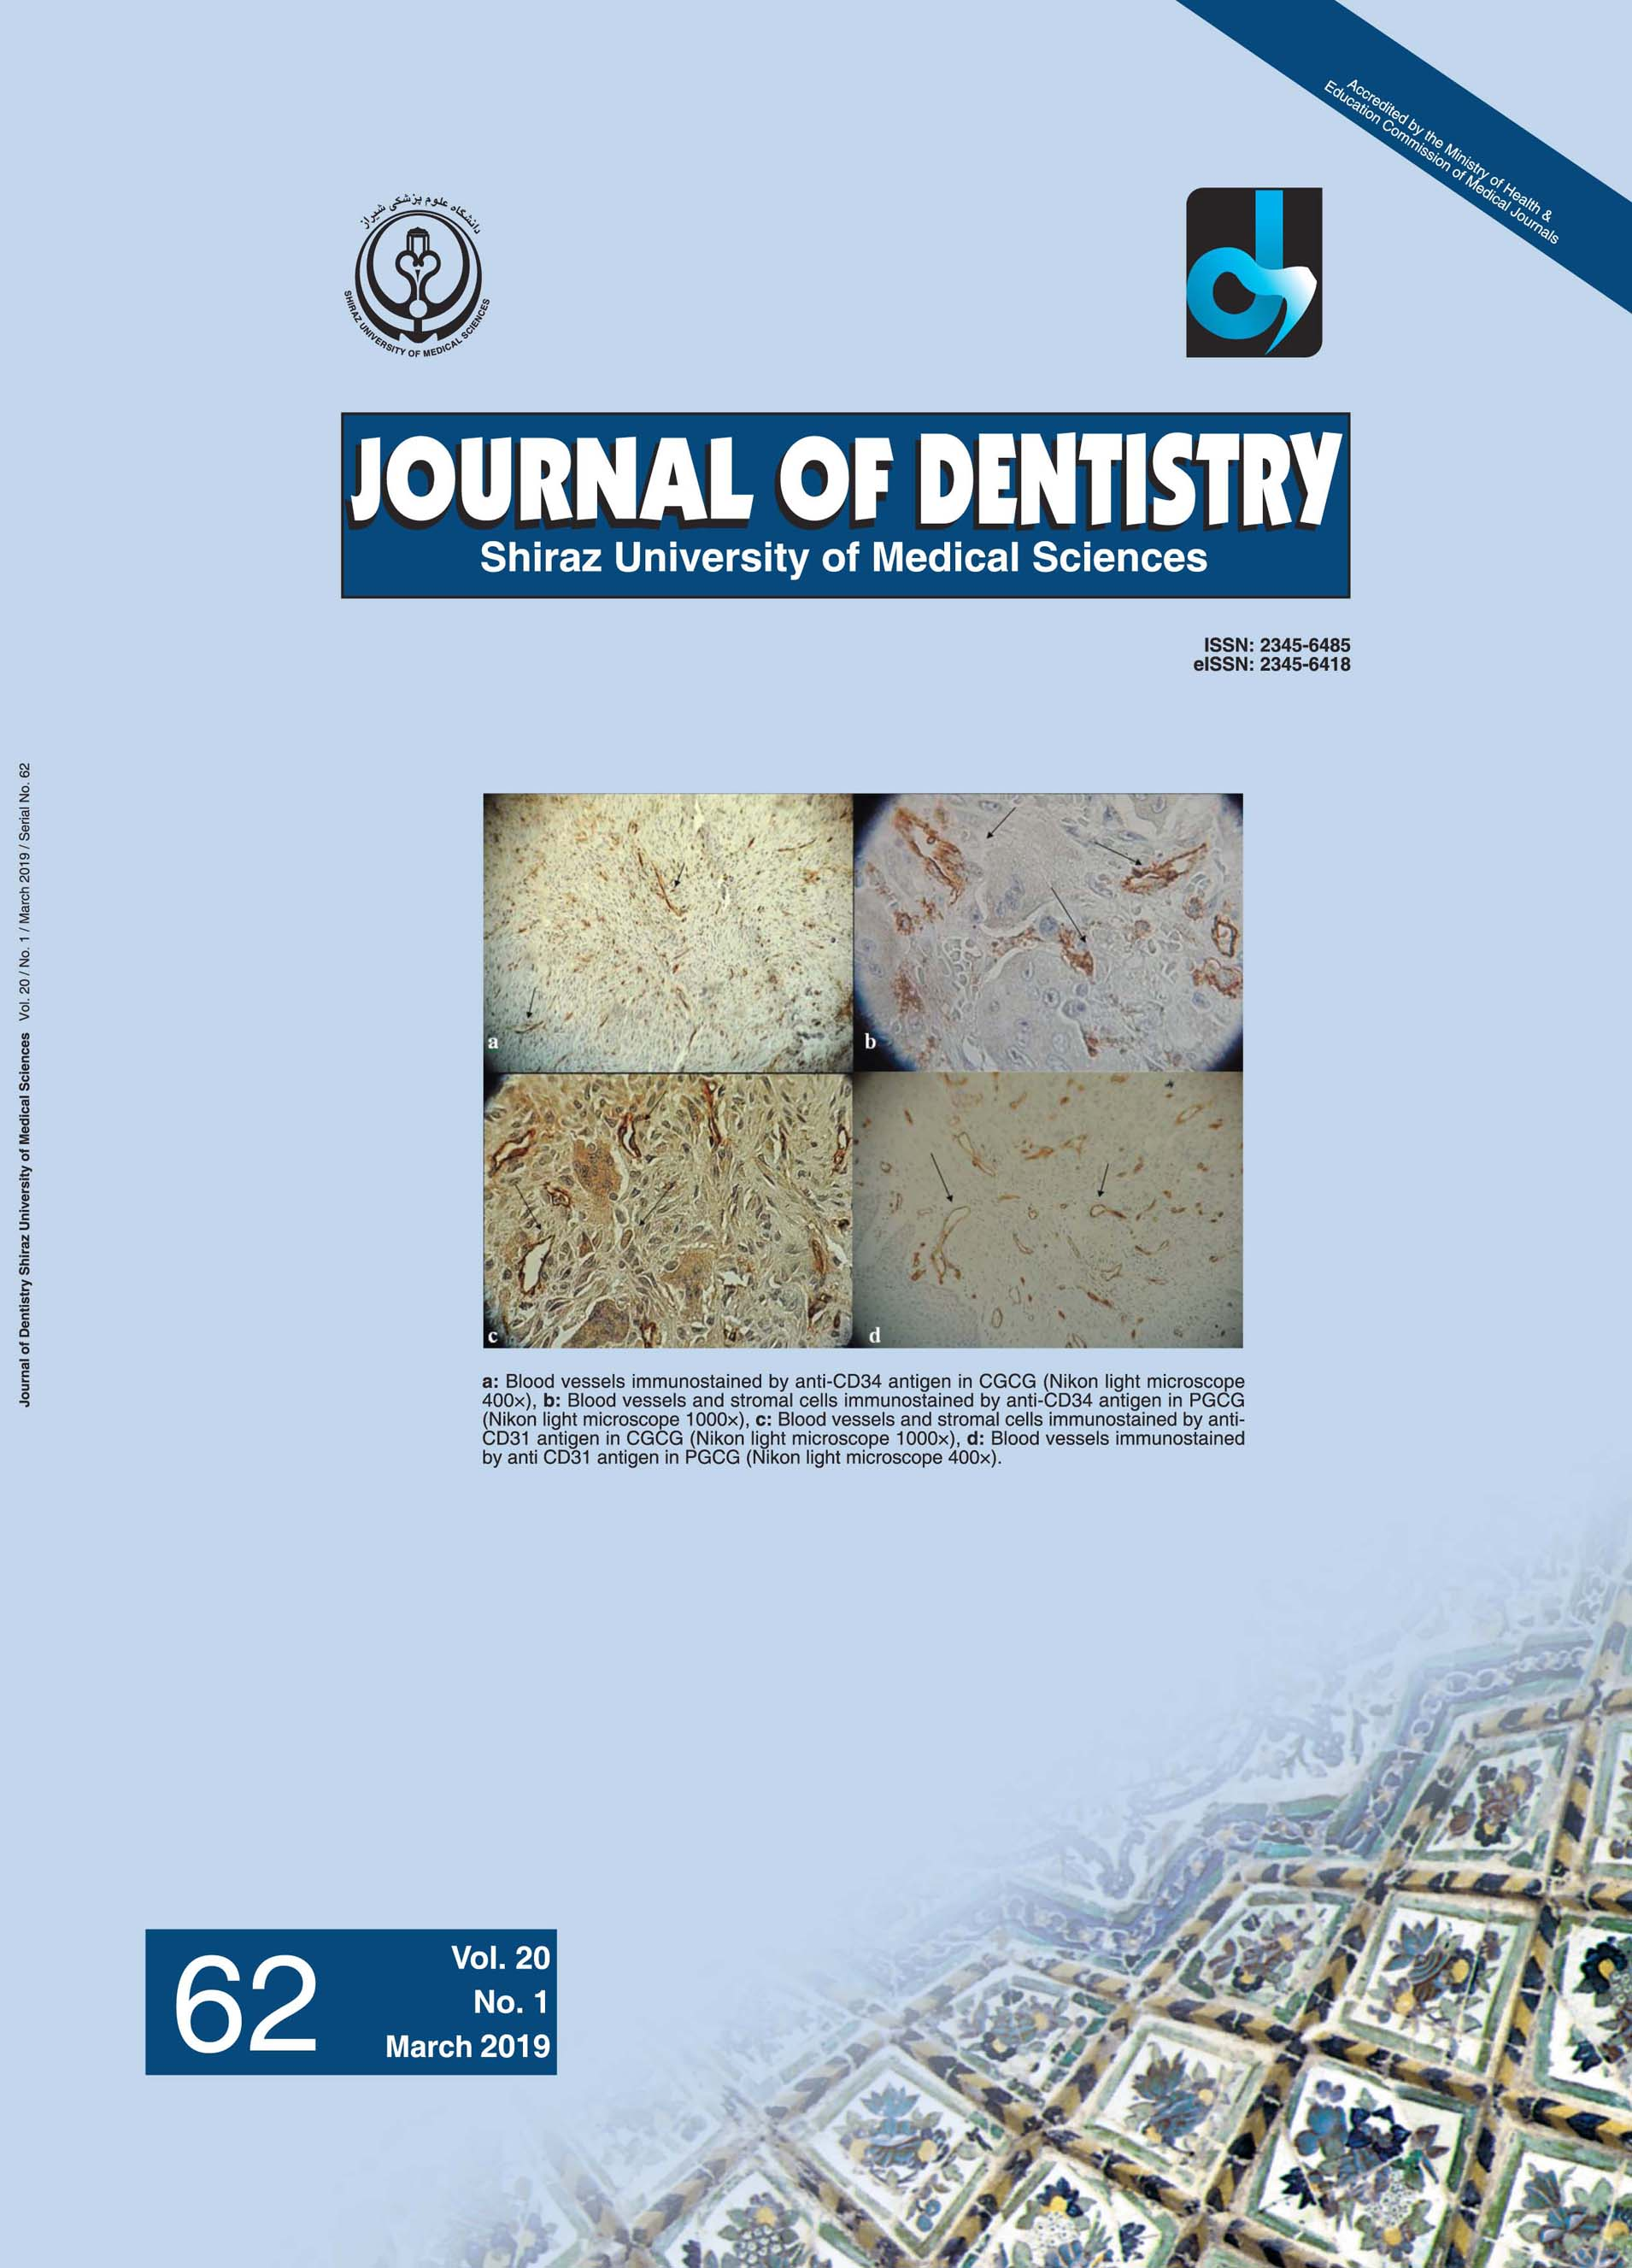 Journal of Dentistry